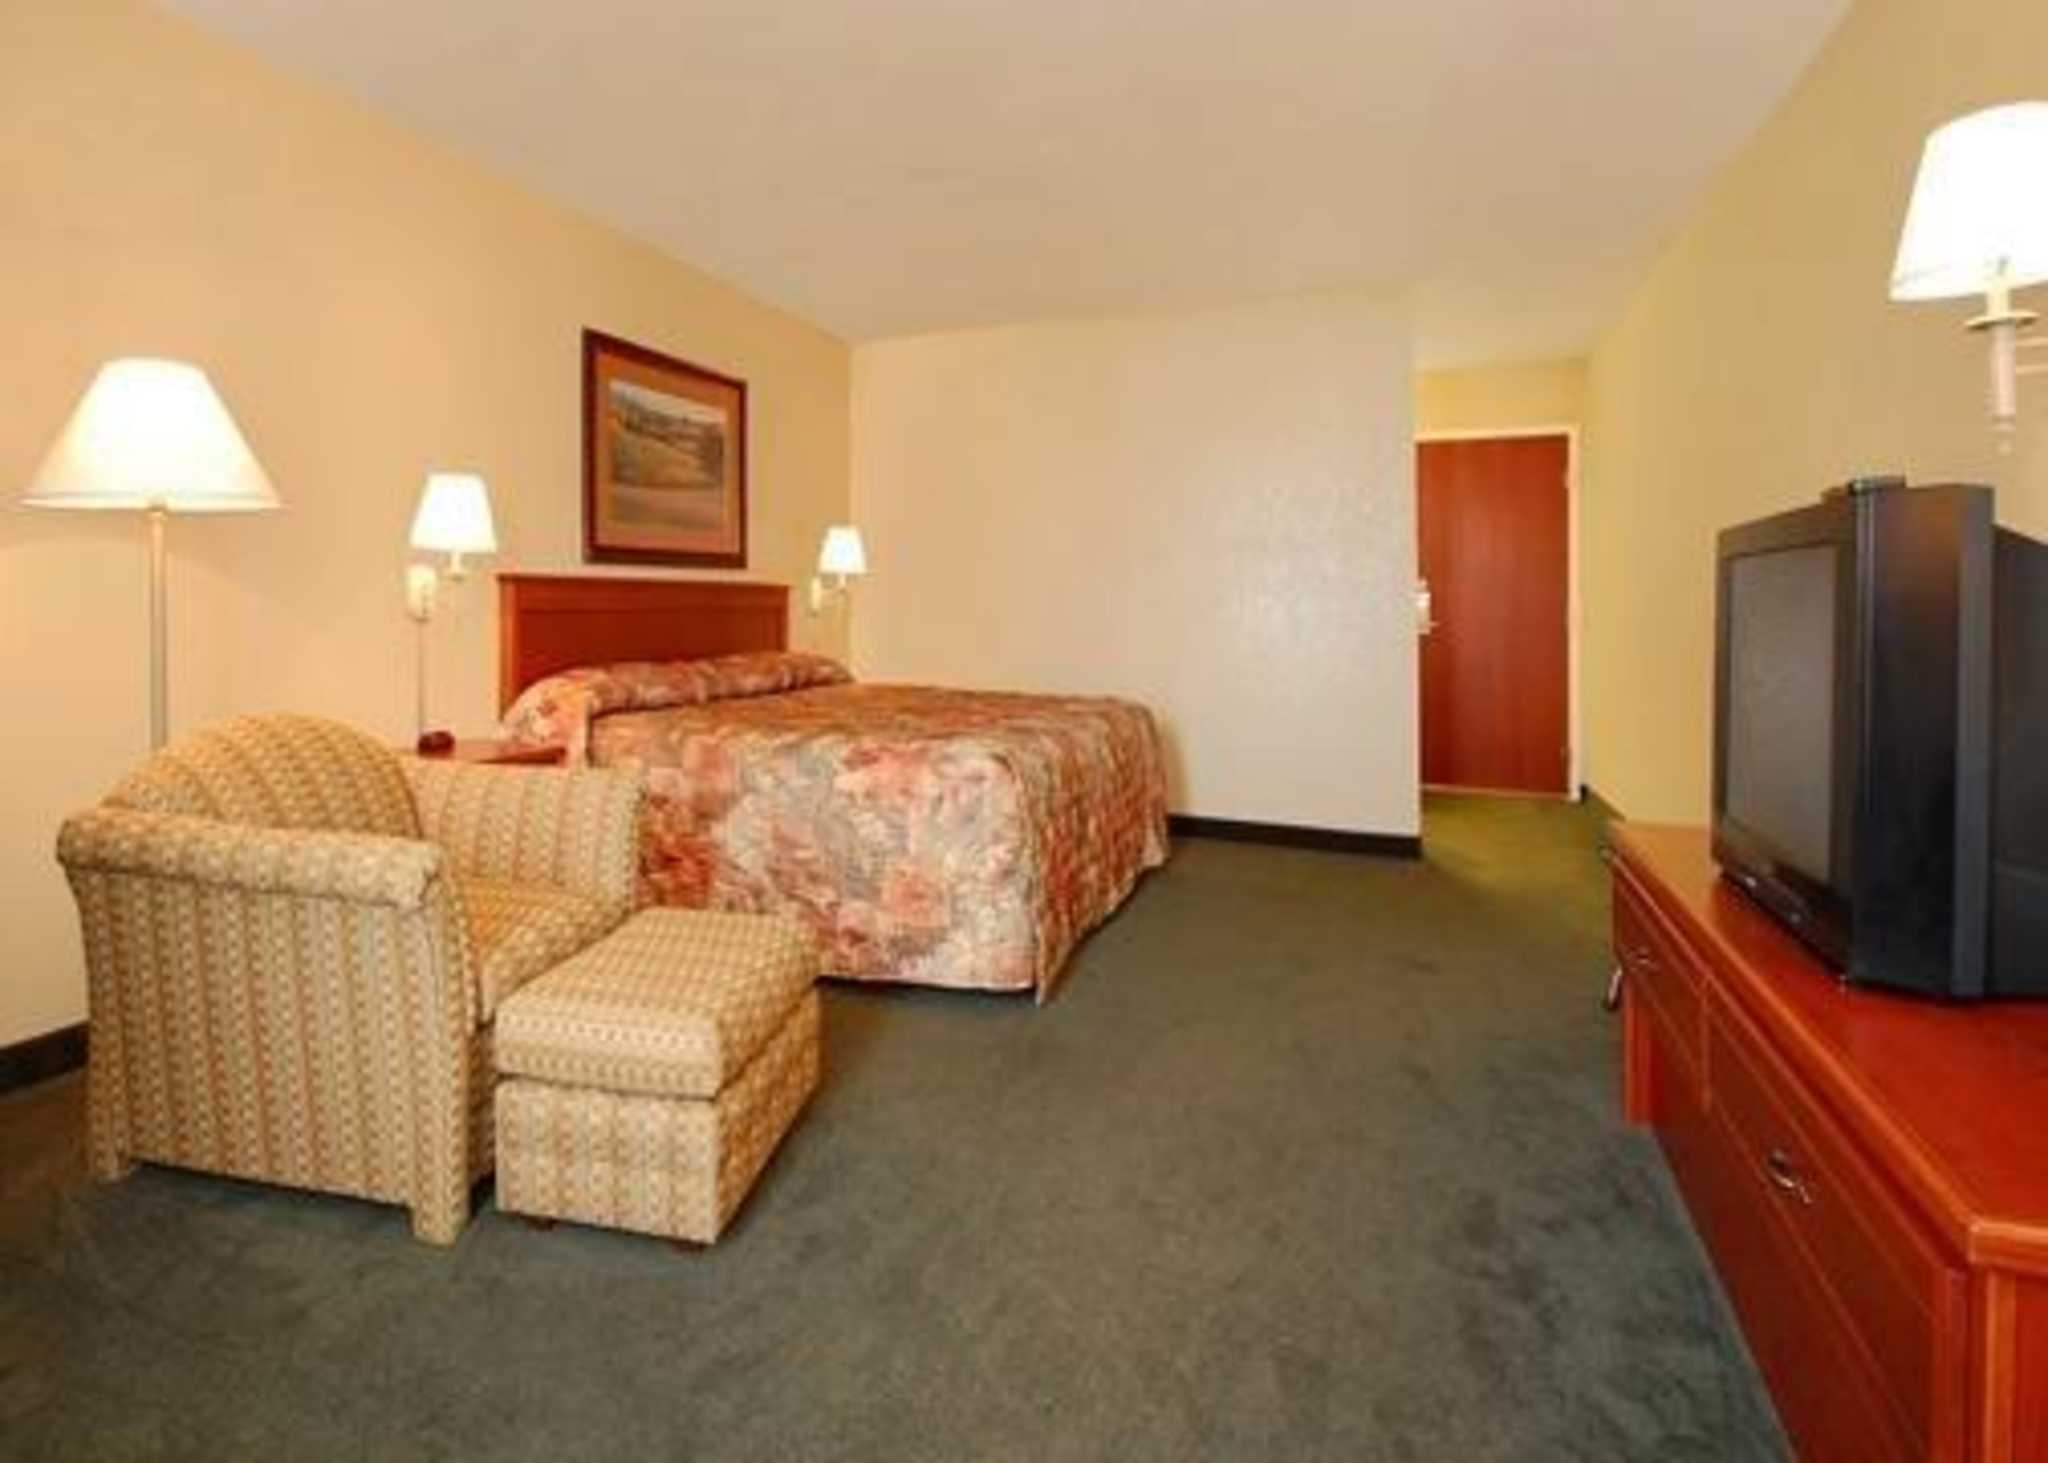 Econo Lodge Inn & Suites image 4